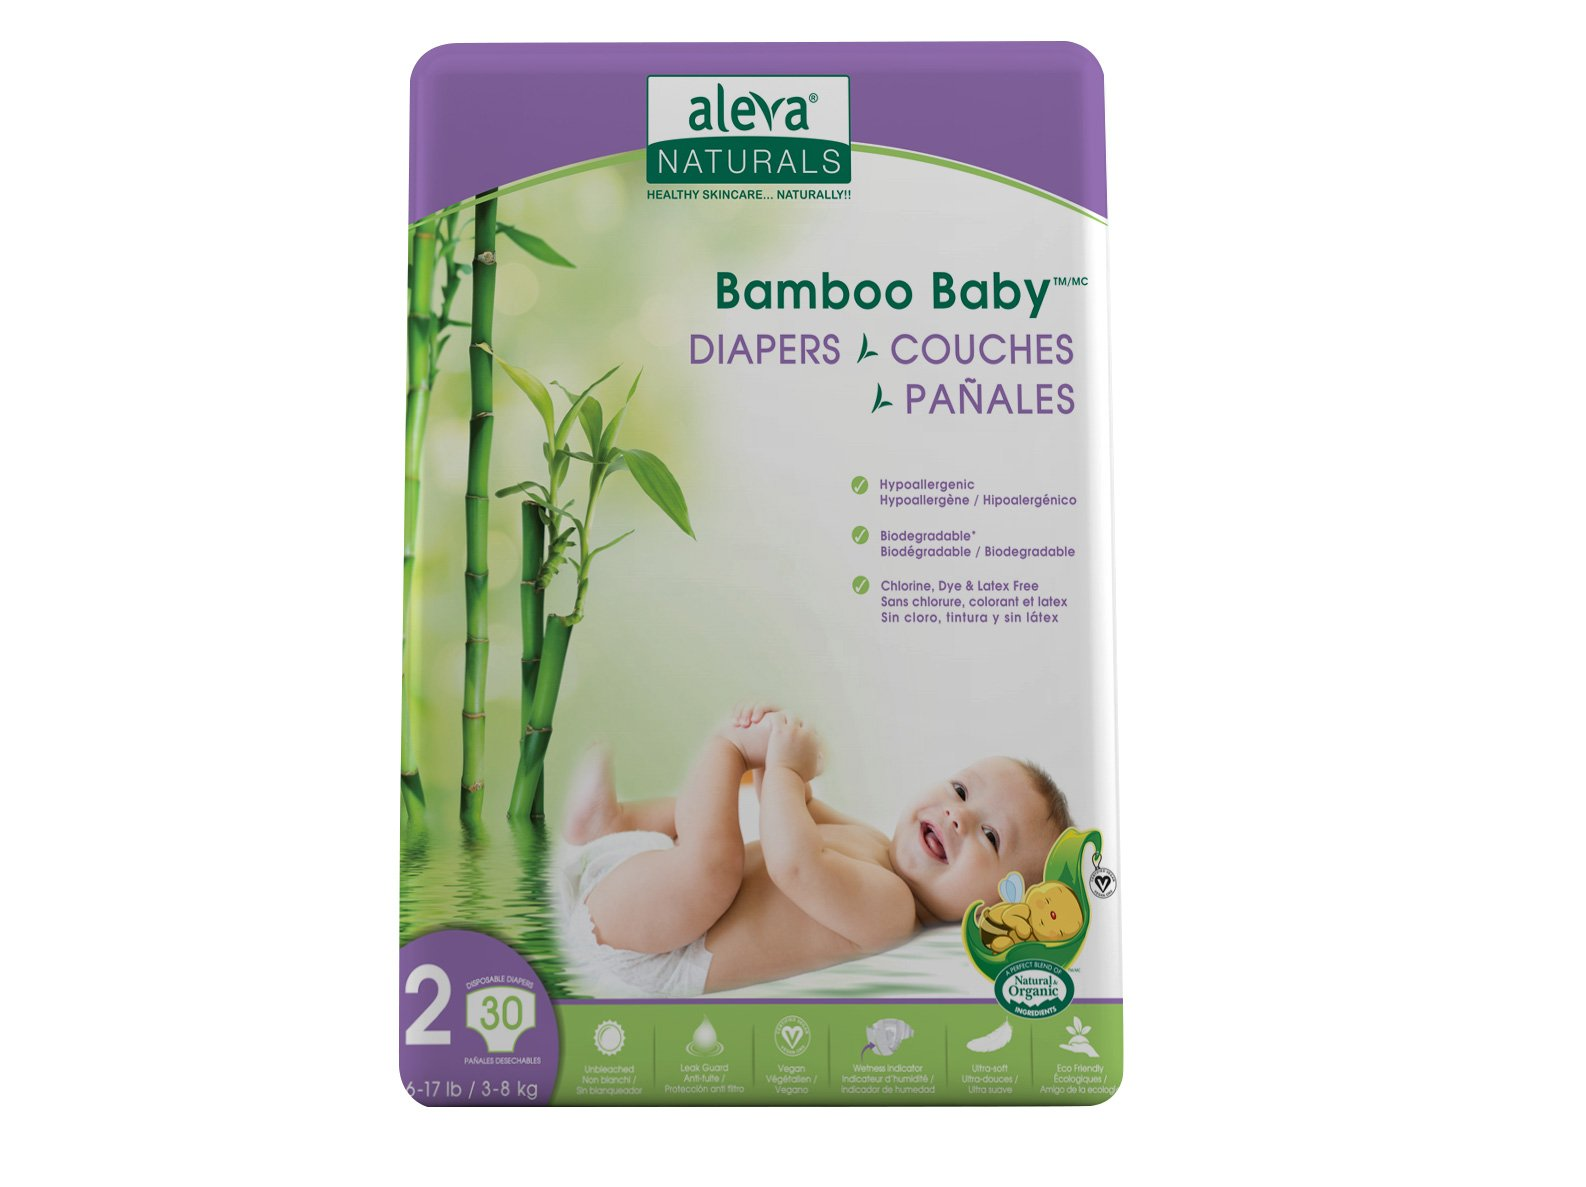 Aleva Naturals Bamboo Baby Diapers, Size 2, (6-17 lbs / 3-8 kgs) 30 Count